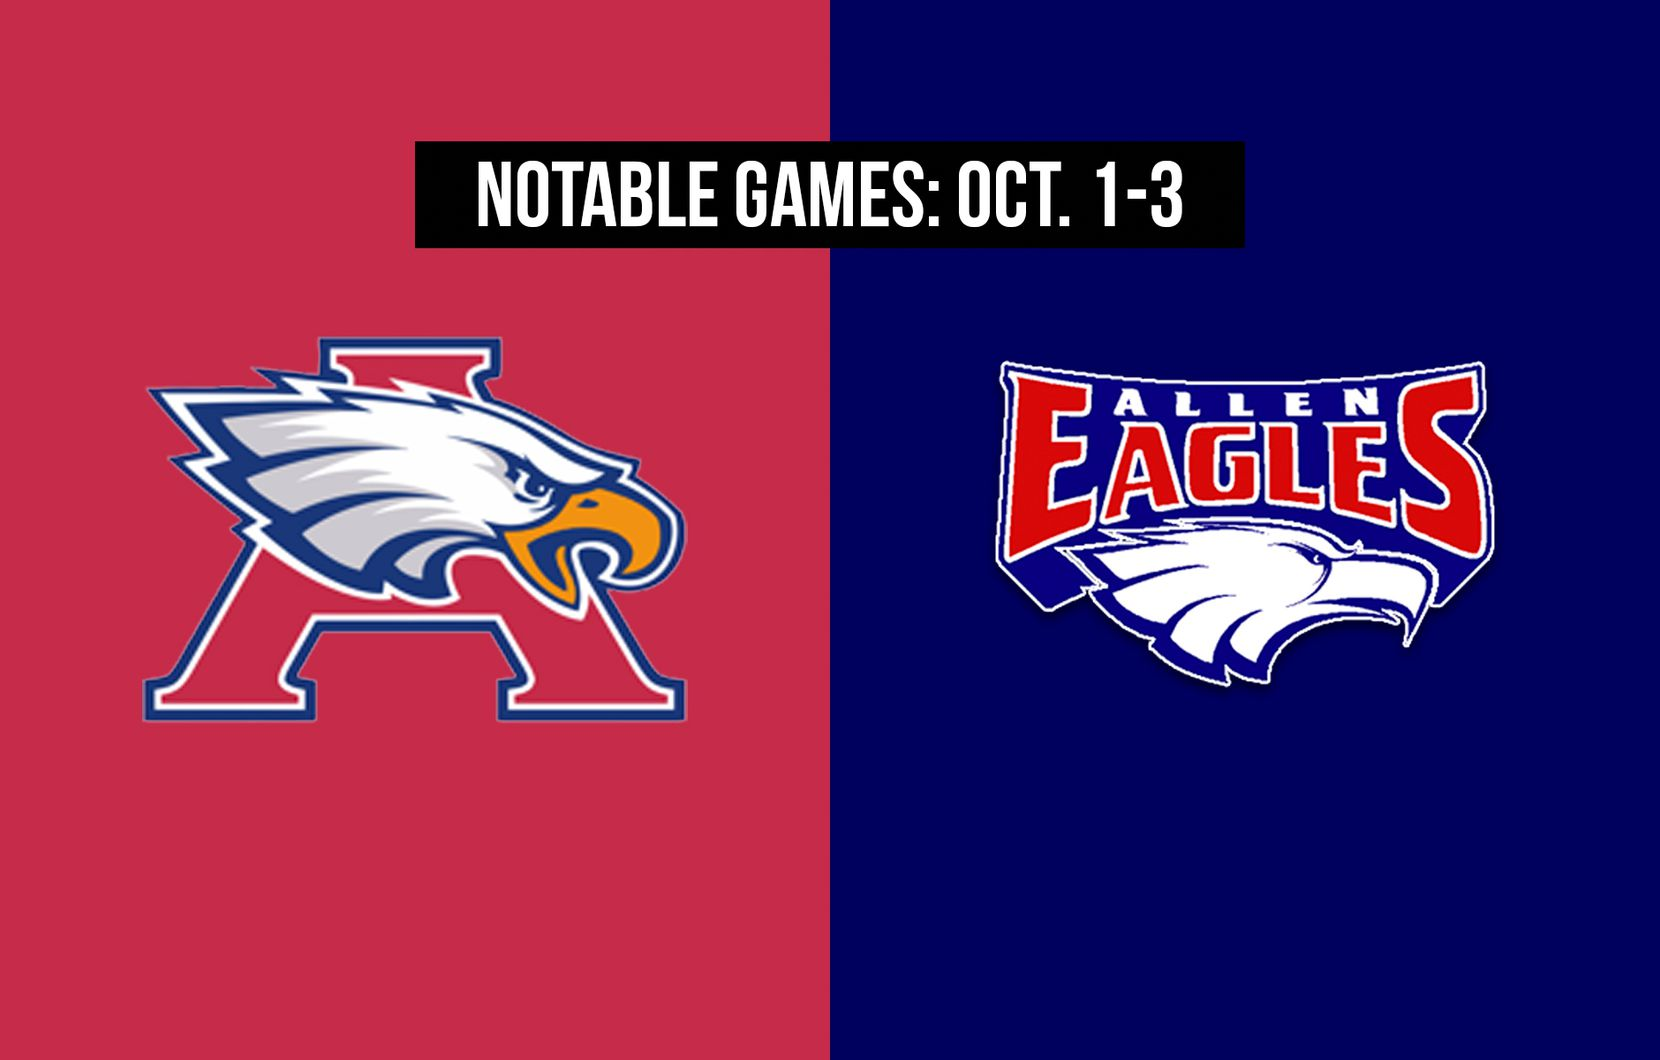 Notable games for the week of Oct. 1-3 of the 2020 season: Humble Atascocita vs. Allen.